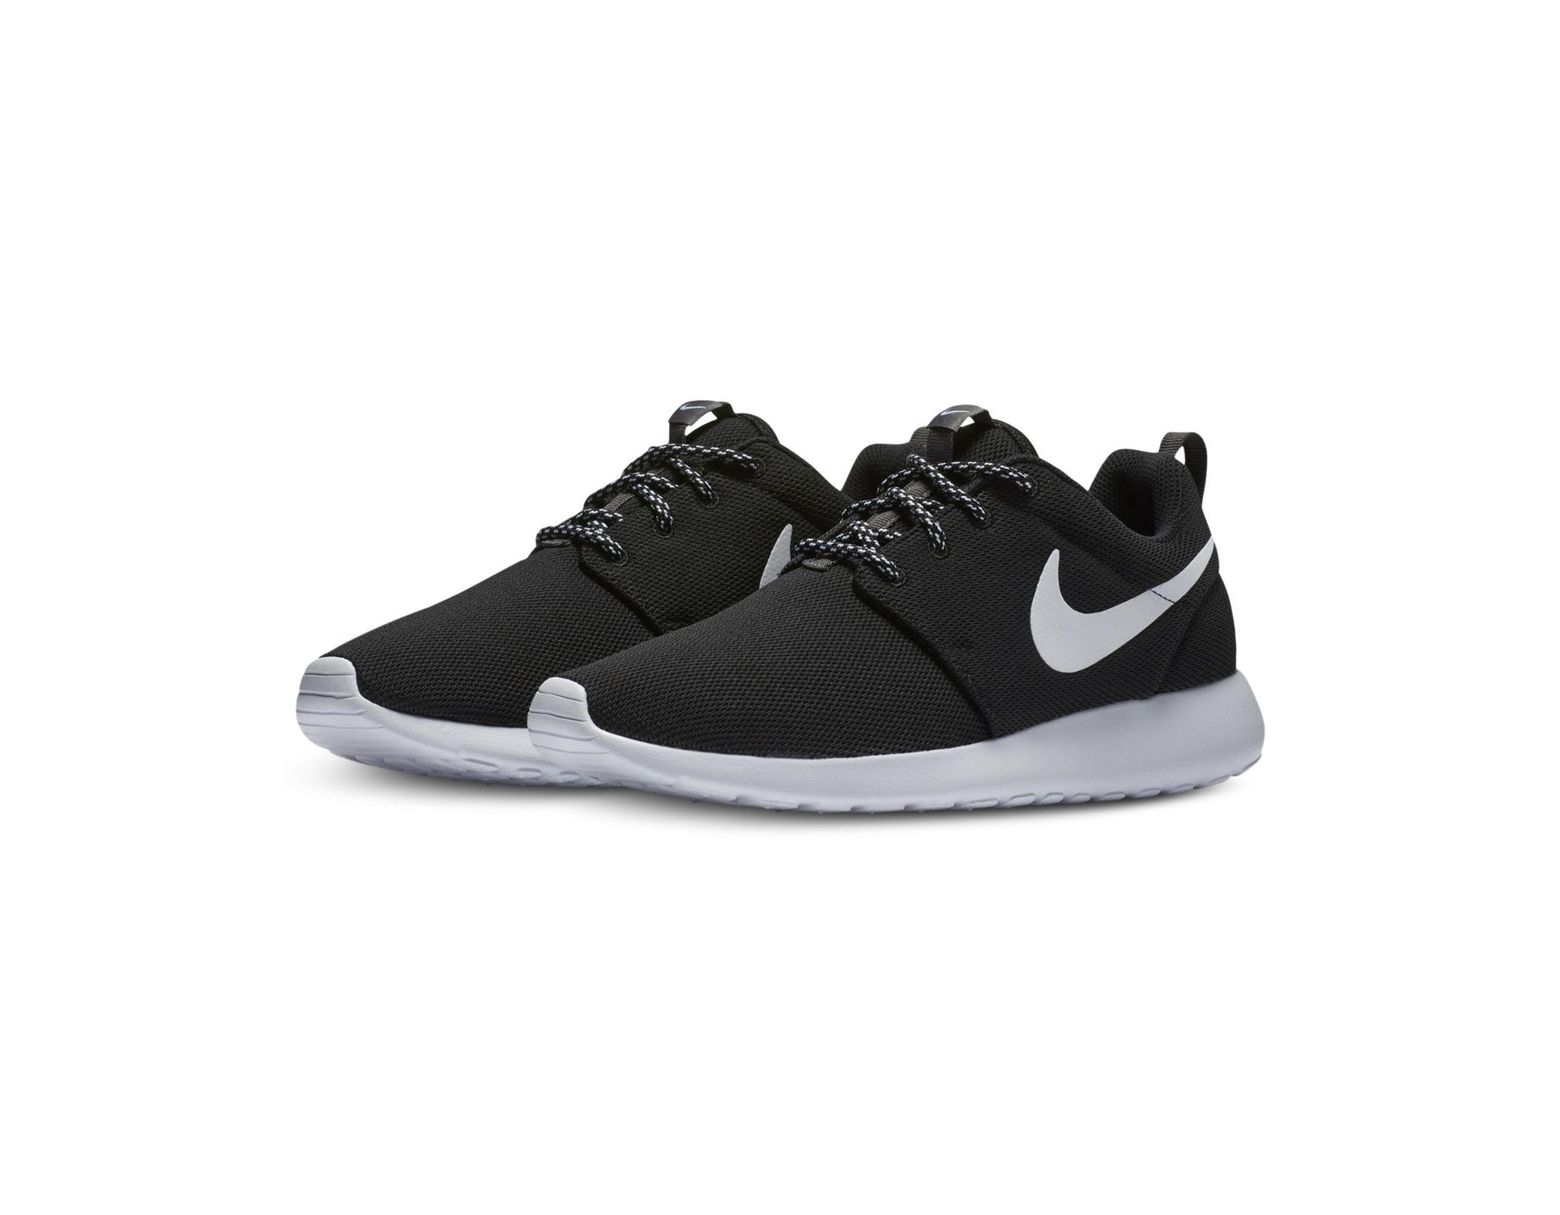 ed8af0fada0ca Lyst - Nike Women s Roshe One Casual Sneakers From Finish Line in Black for  Men - Save 19%